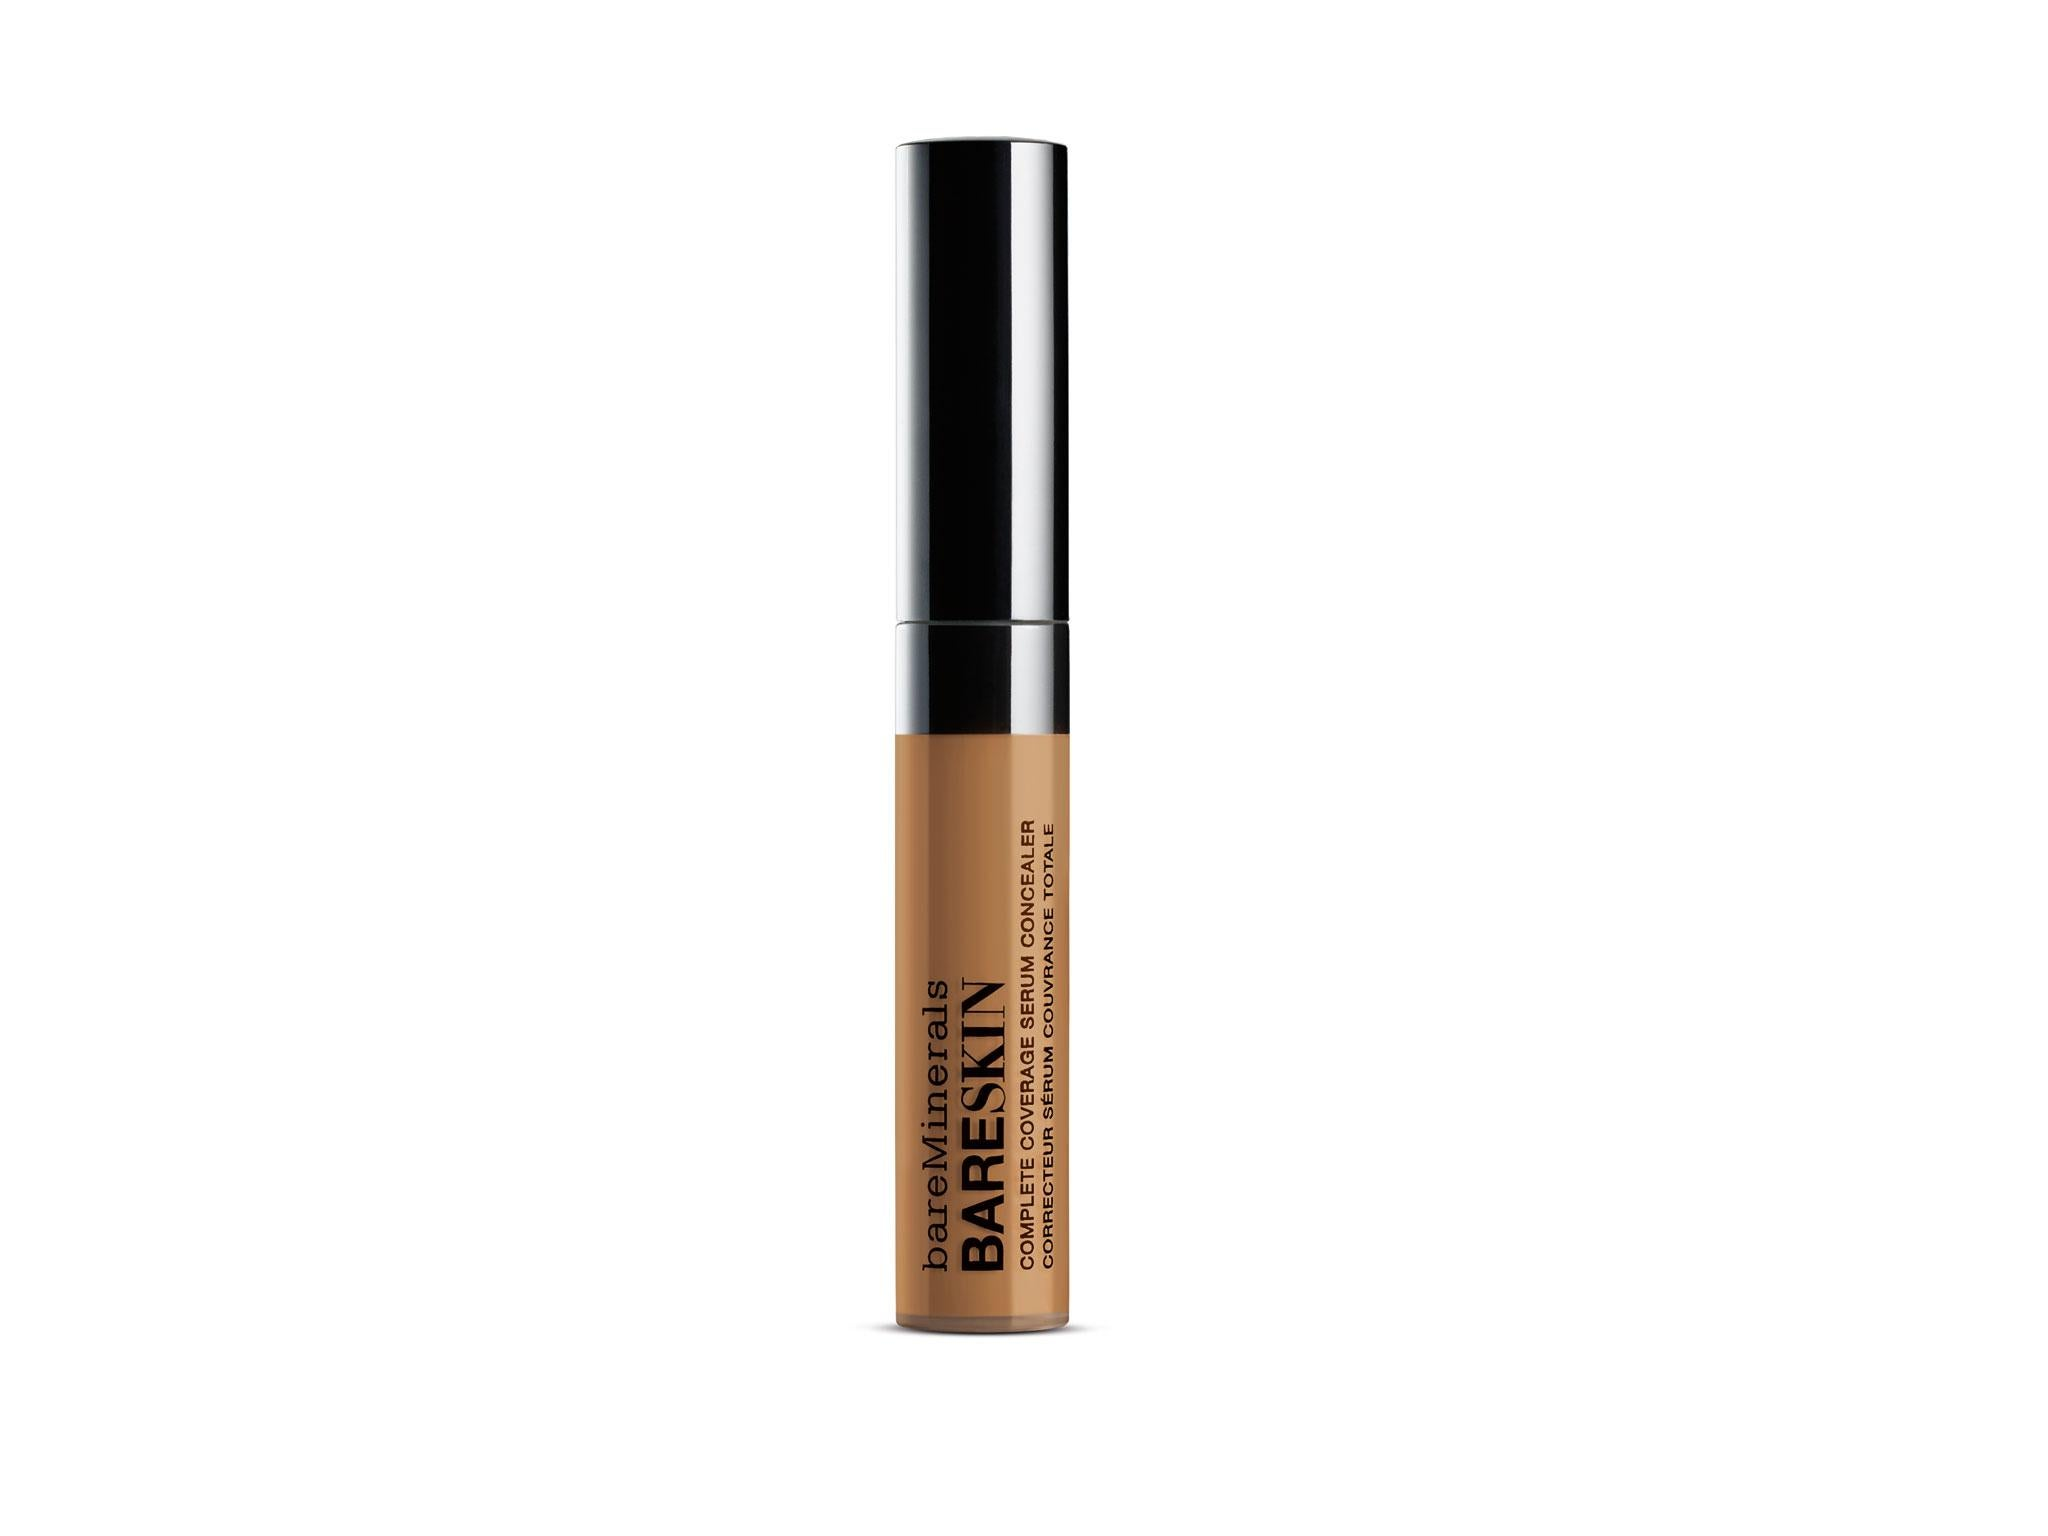 9 Best Concealers For Dark Skin The Independent Nyx Concealer Stick This Will Certainly Last You A While We Only Needed To Apply Little Cover Most Areas Of Face As Silky Formula Spreads Really Well